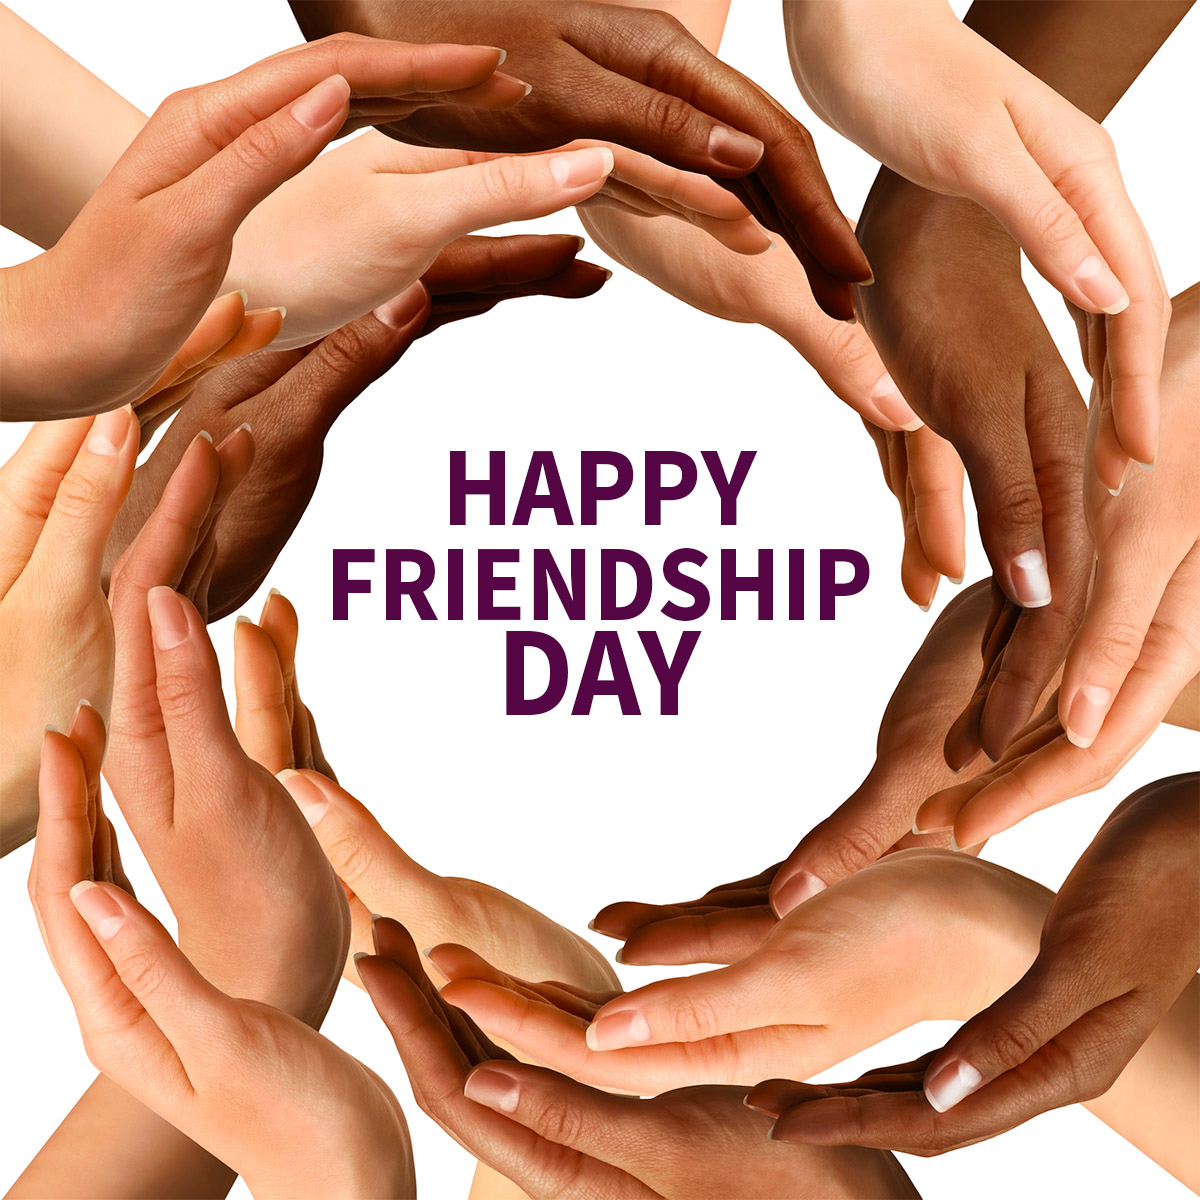 Happy Friendship Day Images For Facebook DP